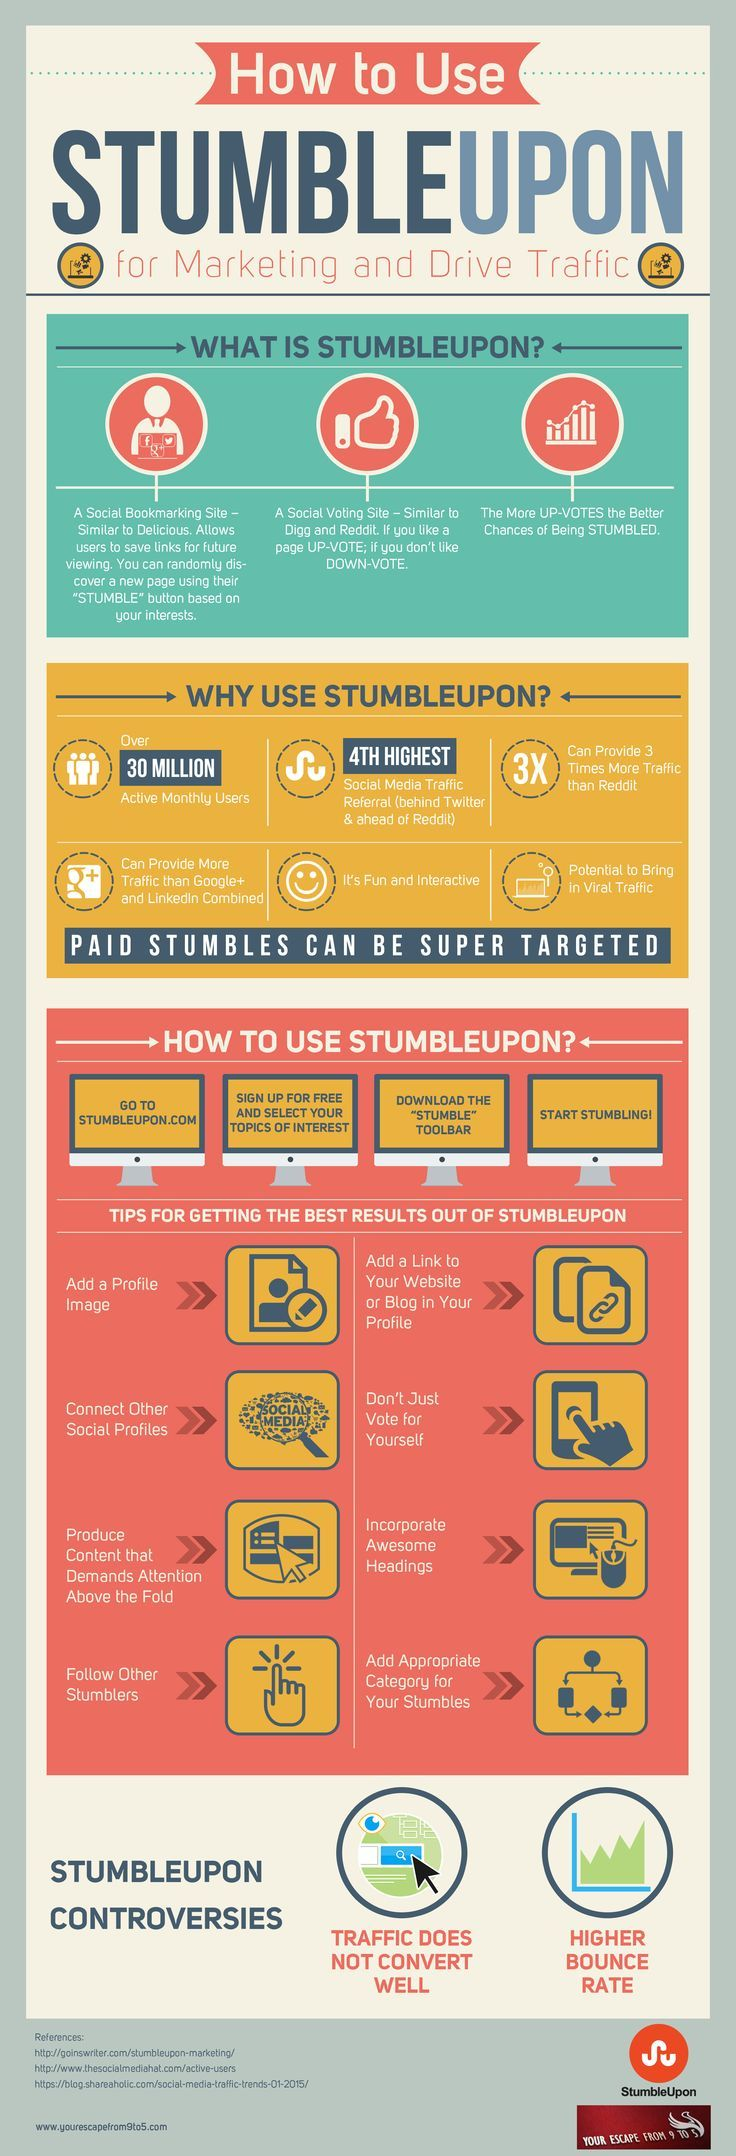 How to Use StumbleUpon to Drive Traffic and Marketing #infographic #Marketing